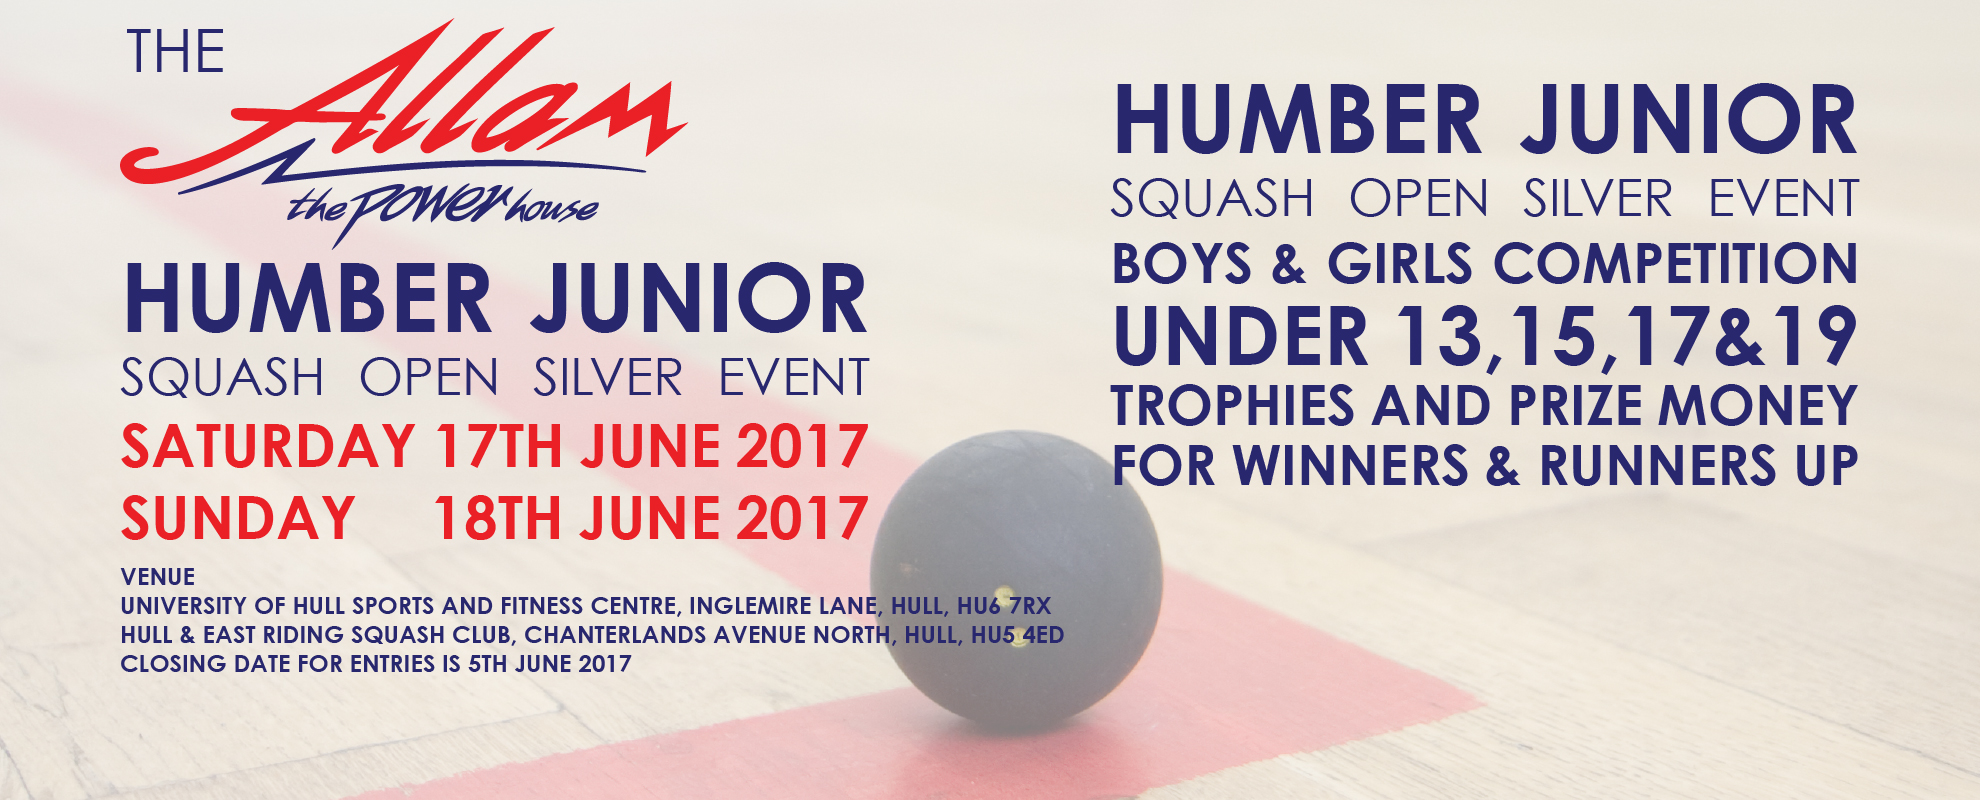 ALLAM HUMBER JUNIOR OPEN - SILVER EVENT  2017 - RESULTS OUT NOW